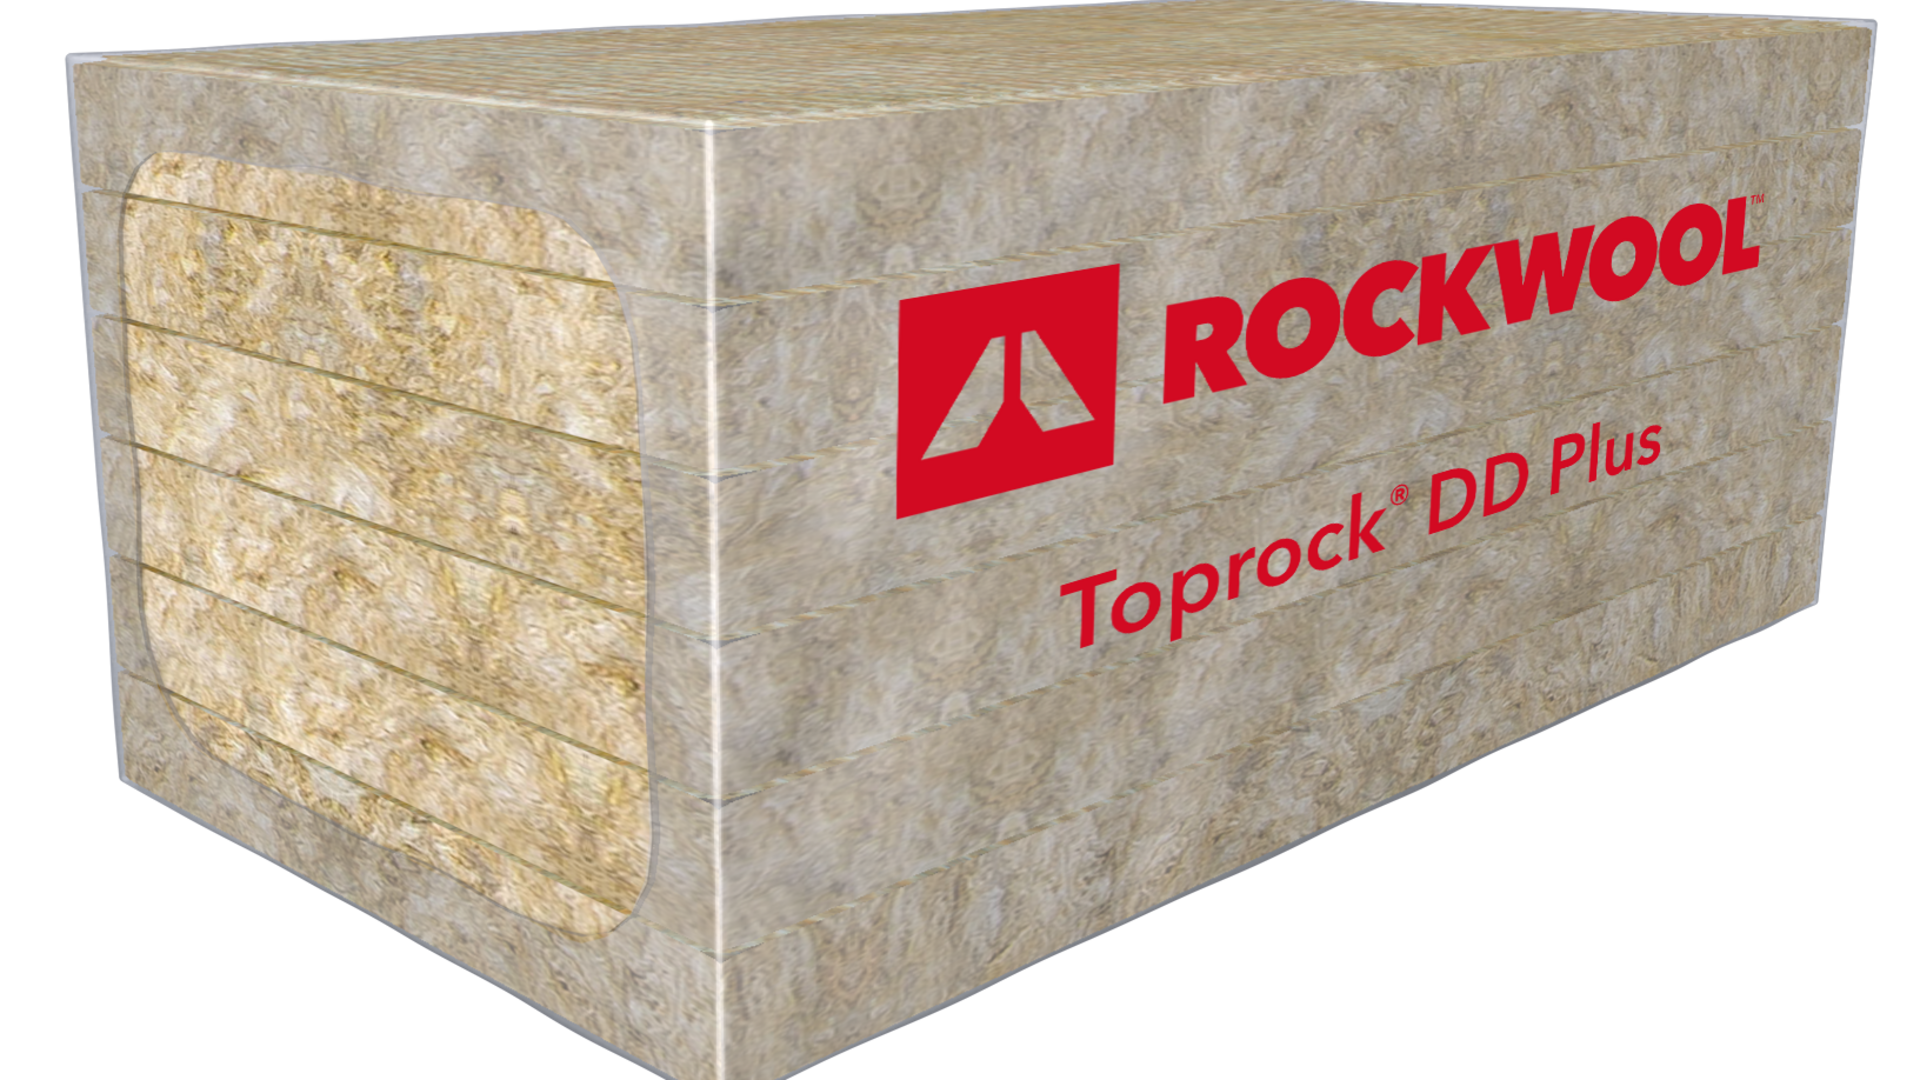 Toprock DD Plus